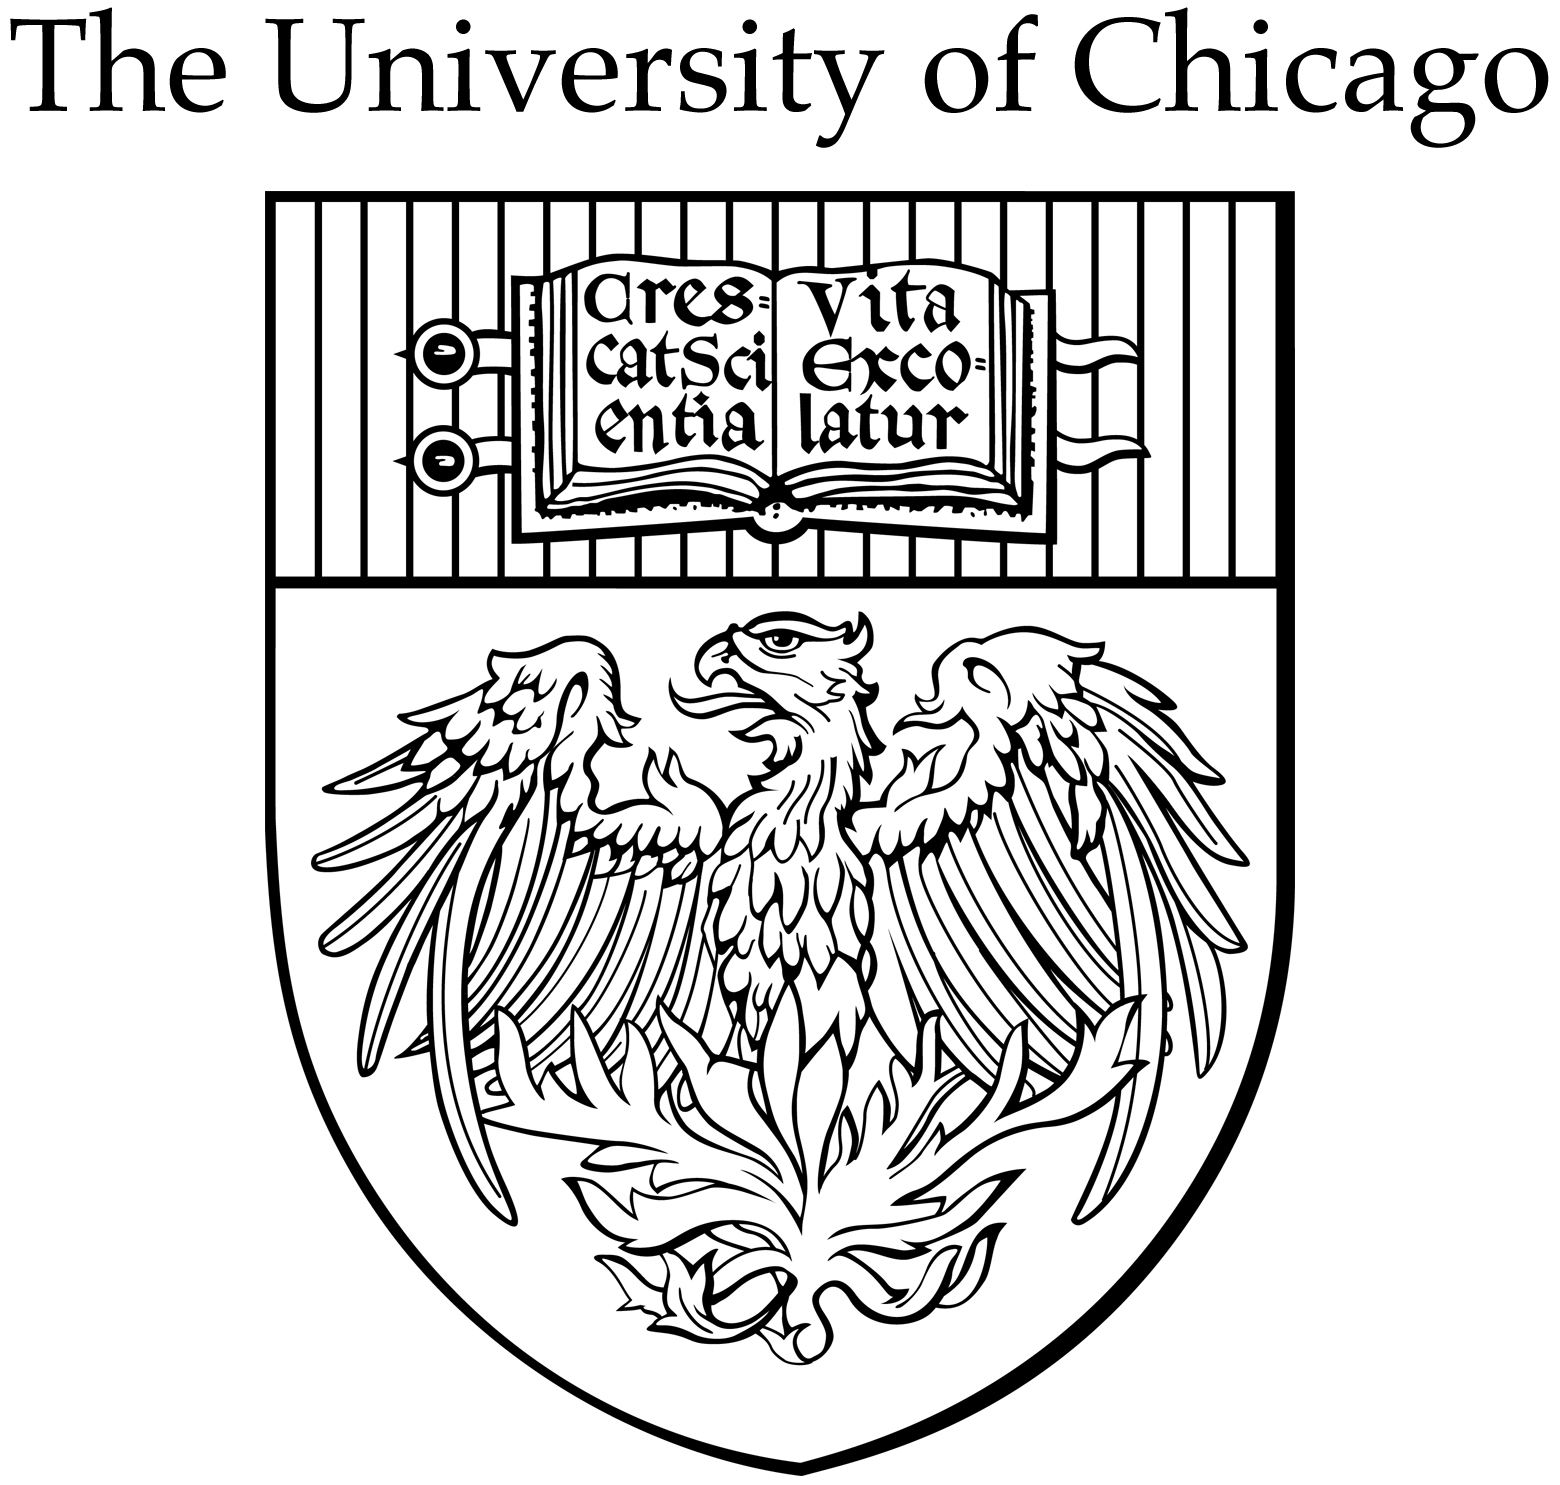 uchicago essay prompts Best college application essay prompts and topics during application for to college admission selection,  (uchicago) admission essay prompt examples.